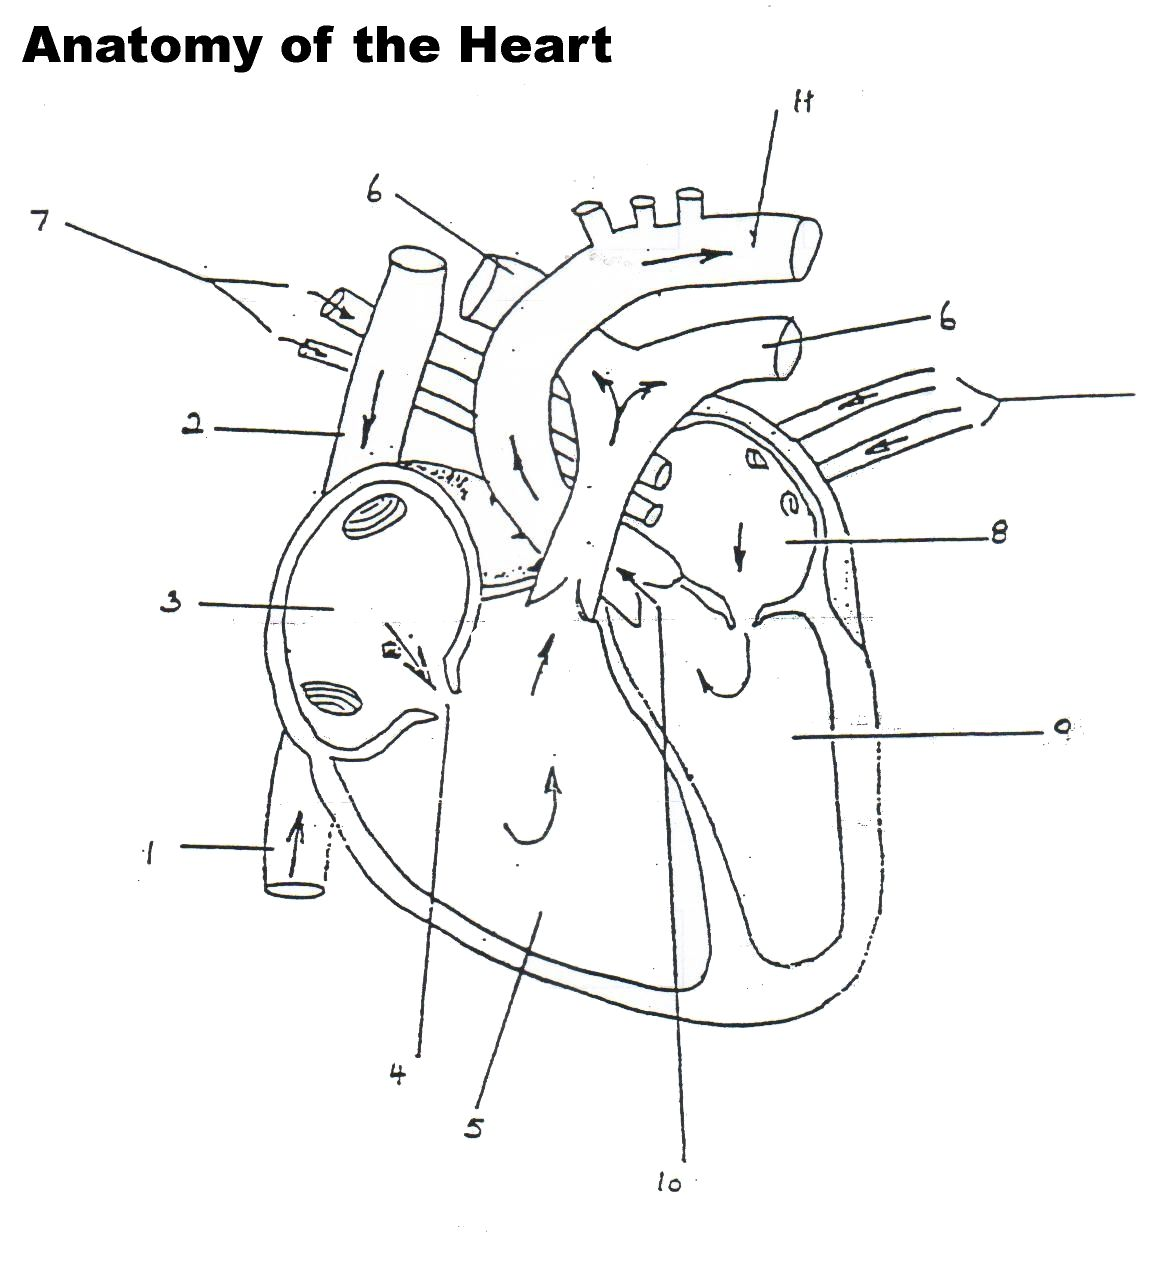 Worksheets The Human Heart Anatomy And Circulation Worksheet human heart worksheet blank professional development pinterest anatomystructure of the